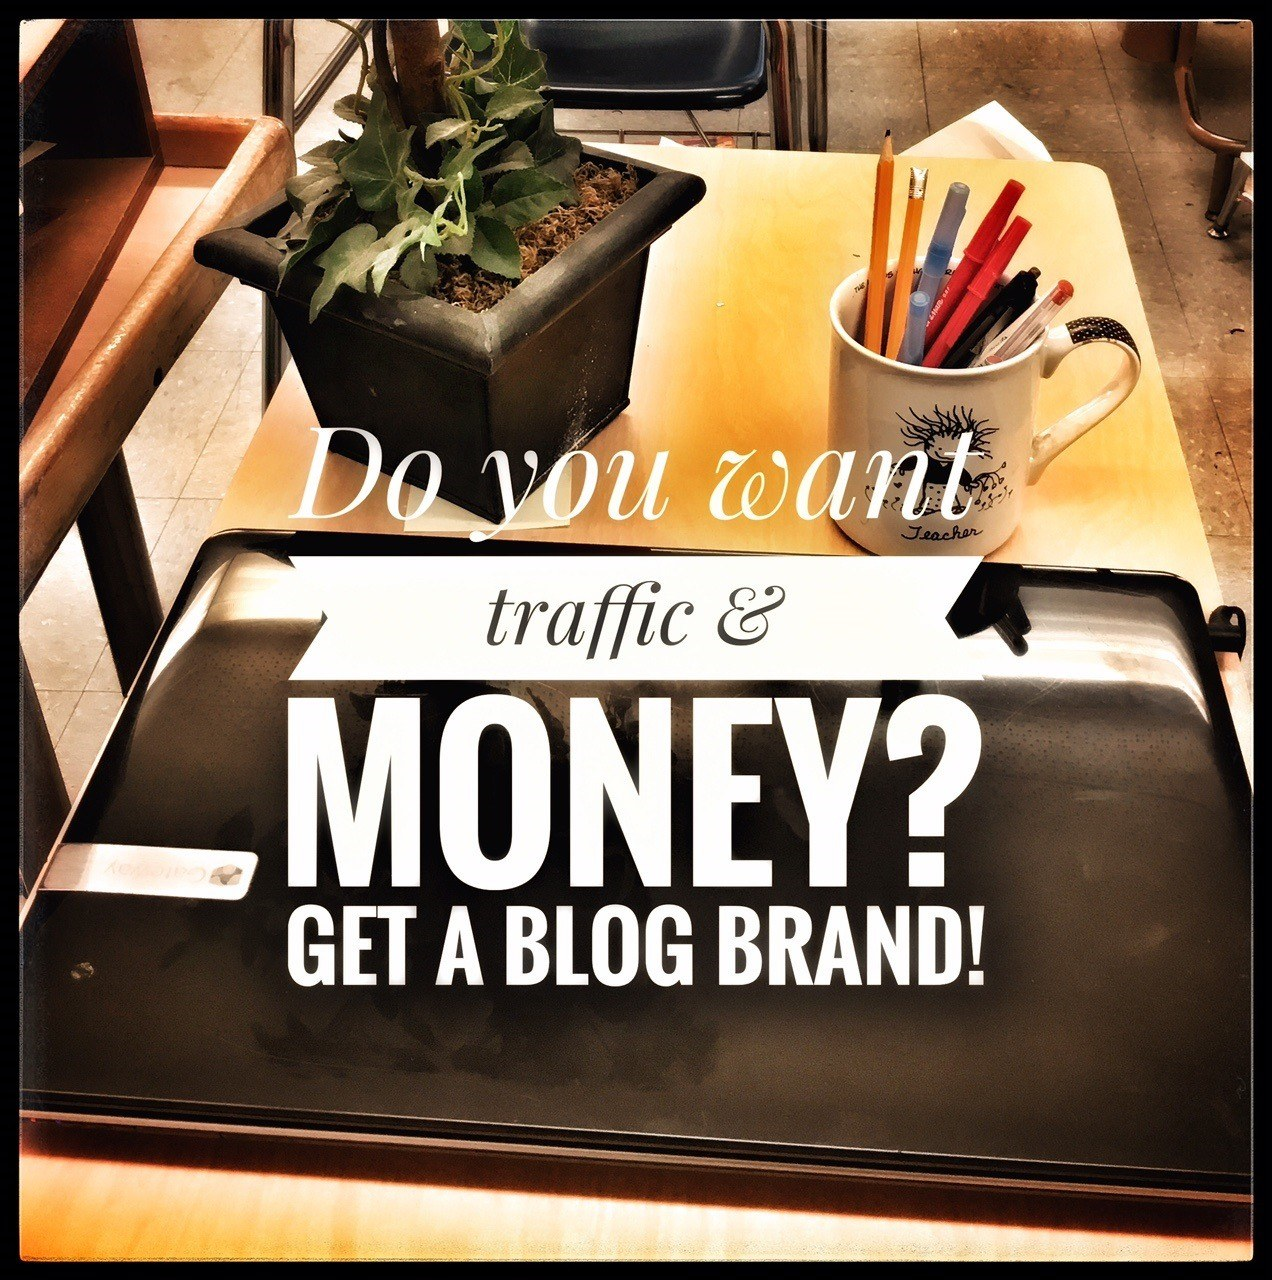 #Bloggers and #Marketers will boost traffic and income with a blog brand